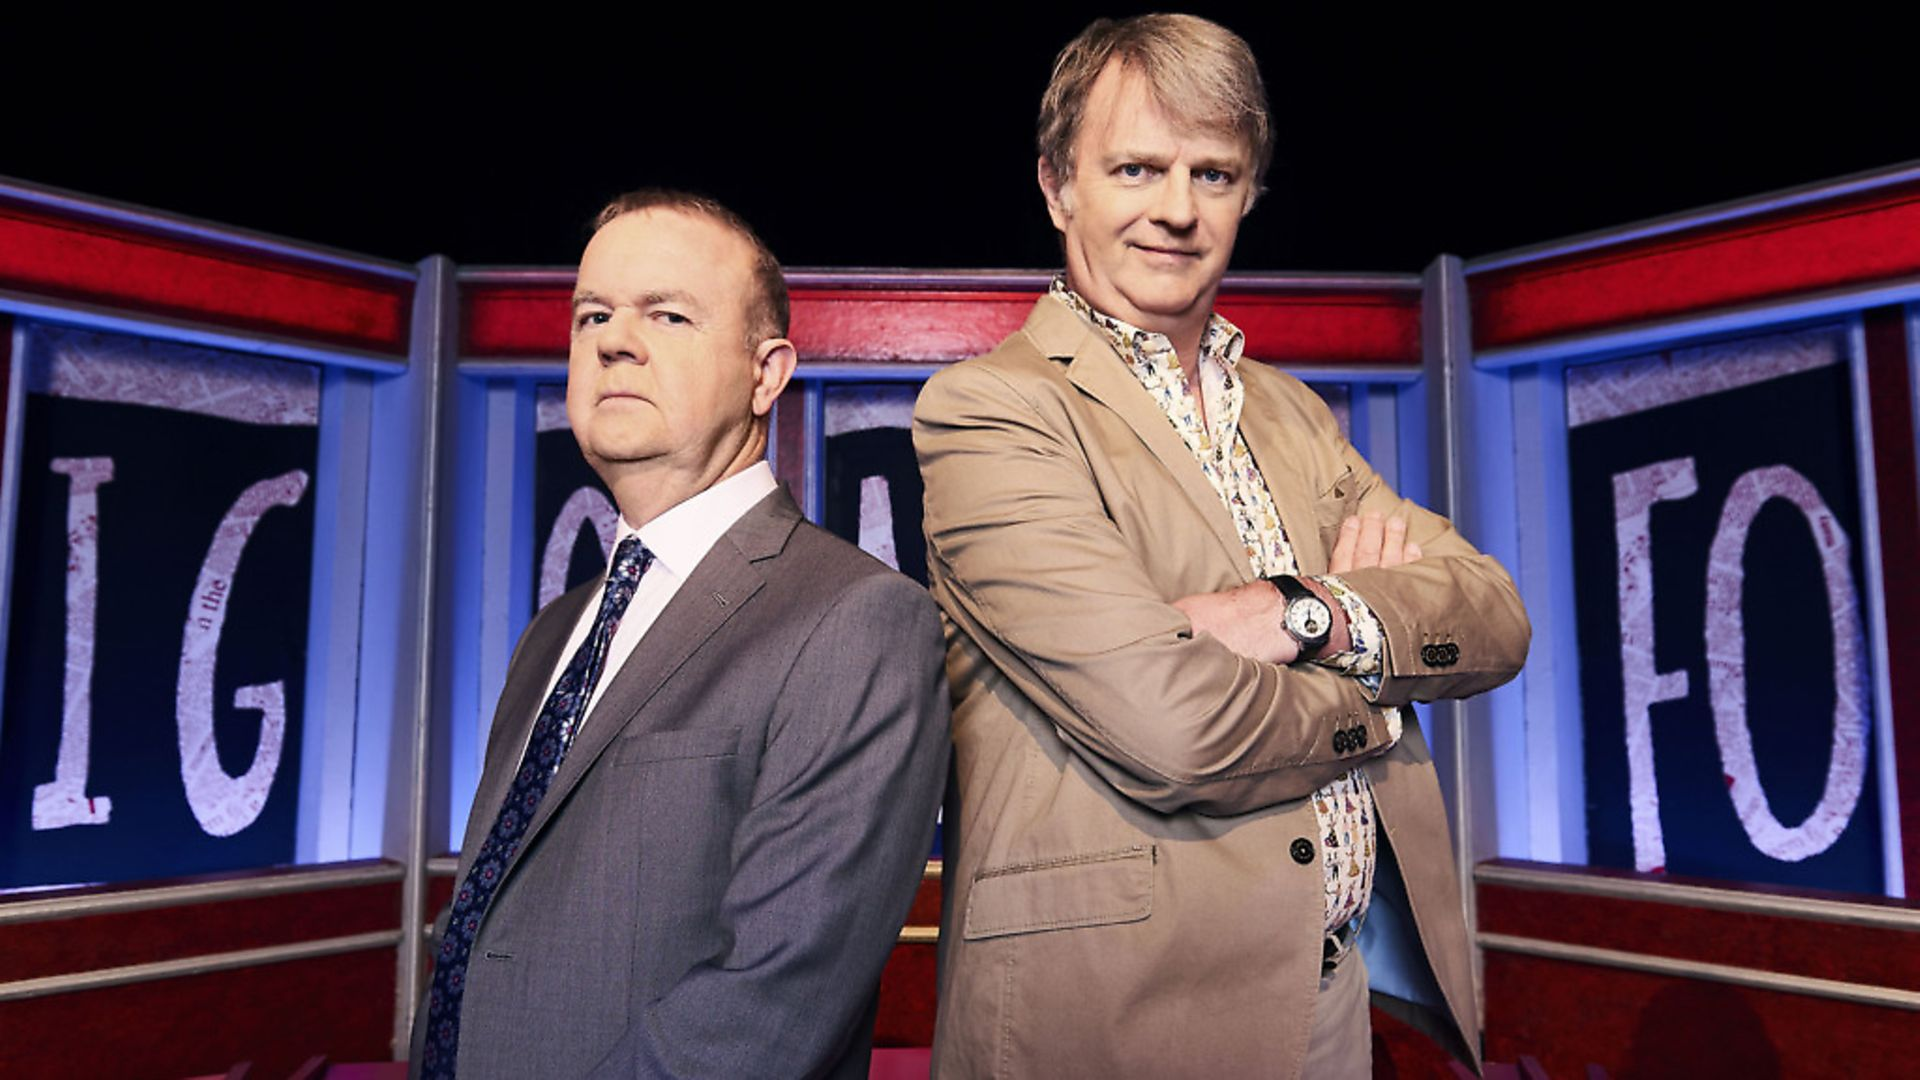 Have I Got News For You's Ian Hislop, left, and Paul Merton. Picture: BBC/Hat Trick/Ray Burmiston - Credit: BBC/Hat Trick/Ray Burmiston